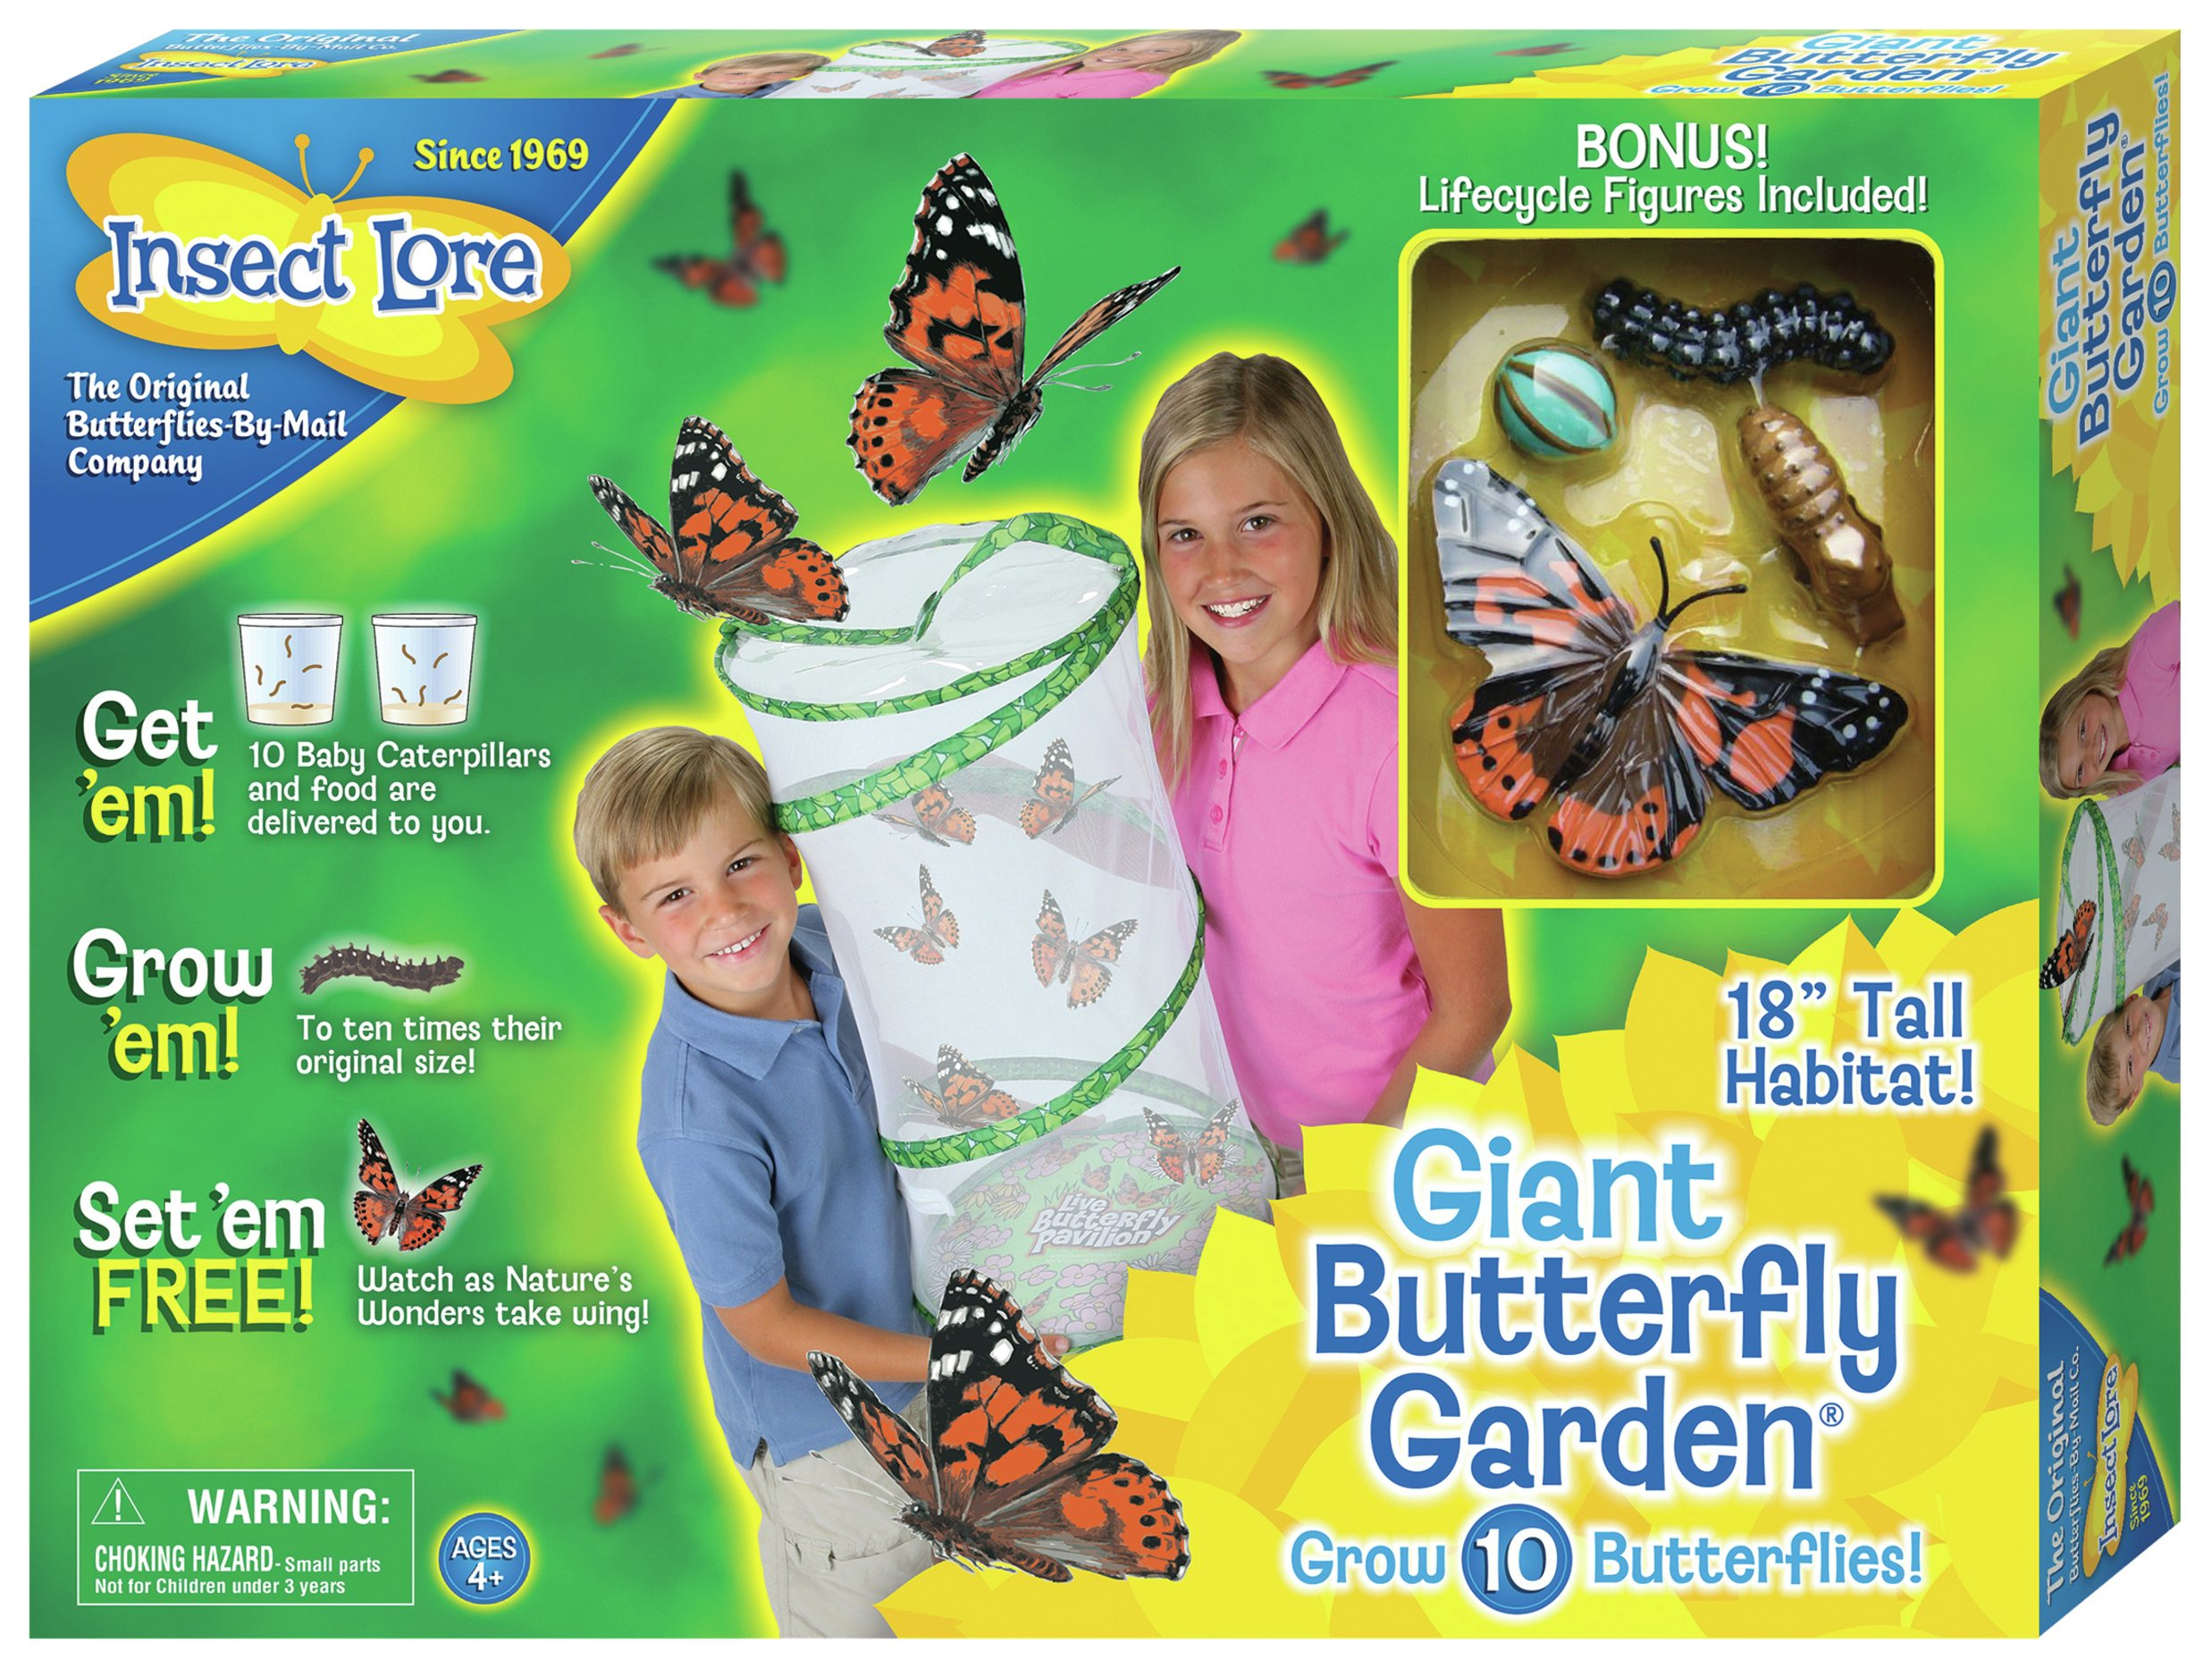 insect lore giant live butterfly garden - Live Butterfly Garden